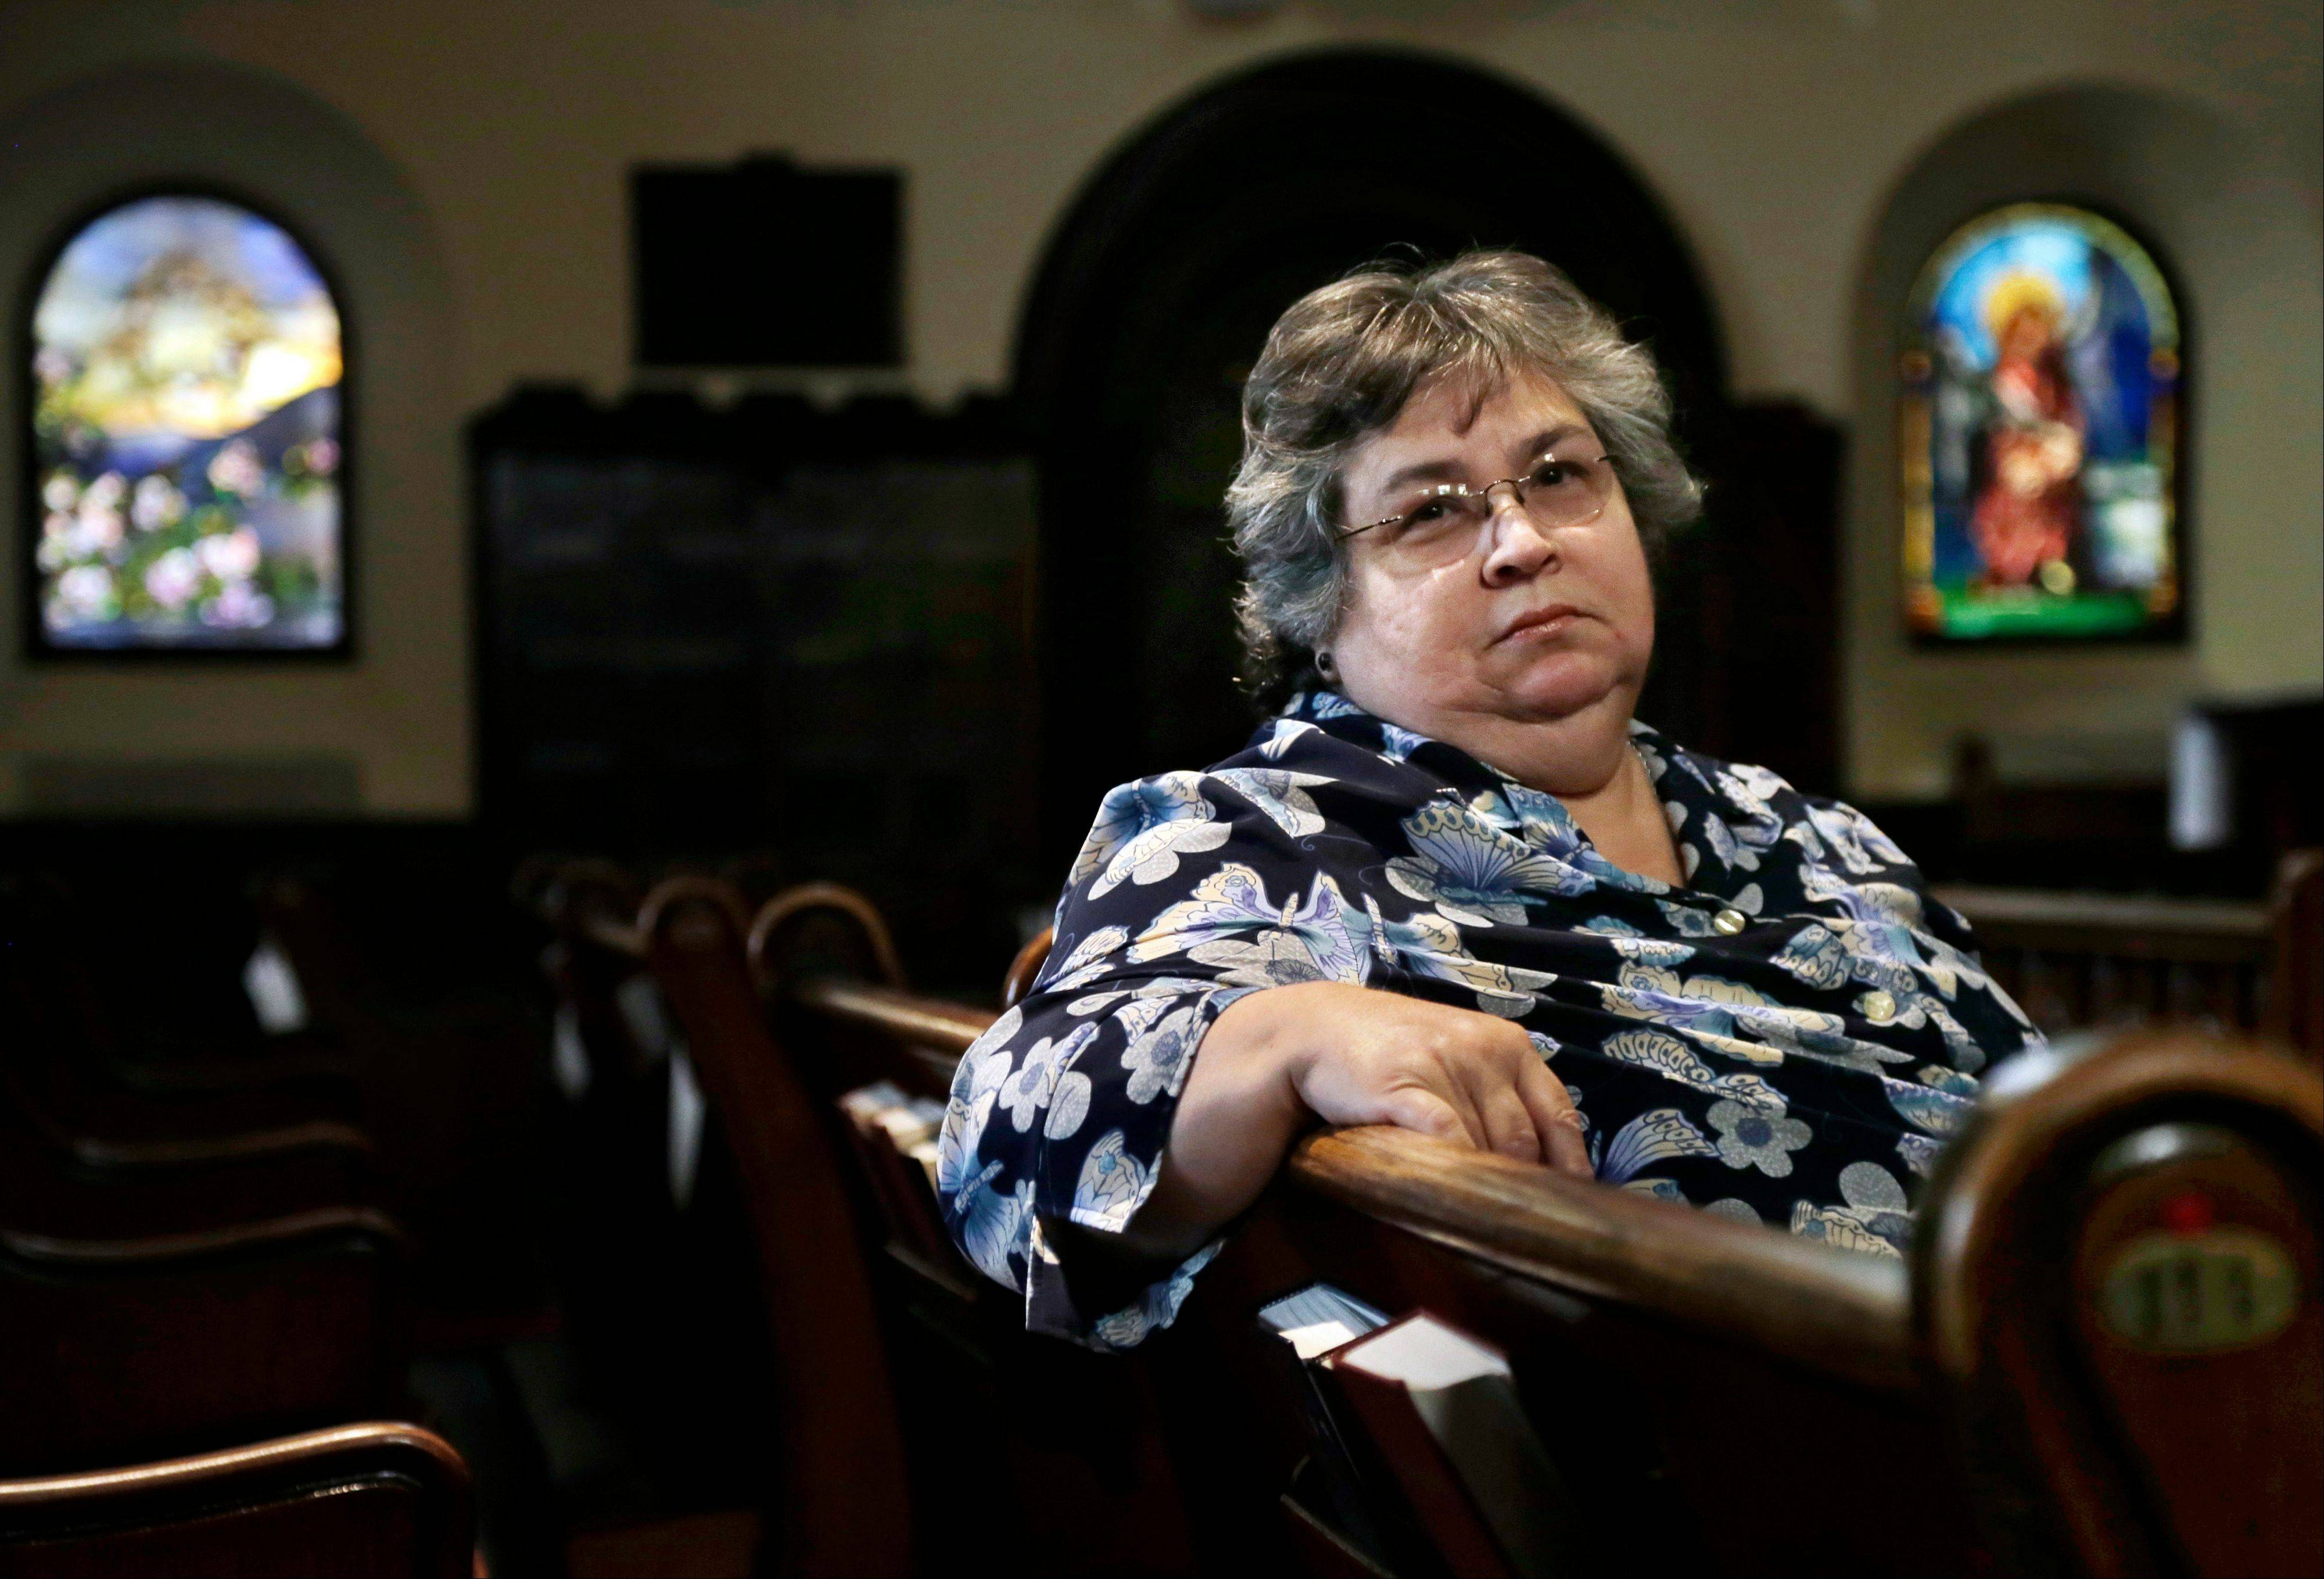 Armantina Pelaez, a former crisis counselor at St. Mary�s Hospital, in Paterson, N.J., sits in Paterson�s Saint Paul�s Episcopal Church. The latest terms of the sale of the hospital appear to show that little more than half the pension obligation shortfall would be covered.